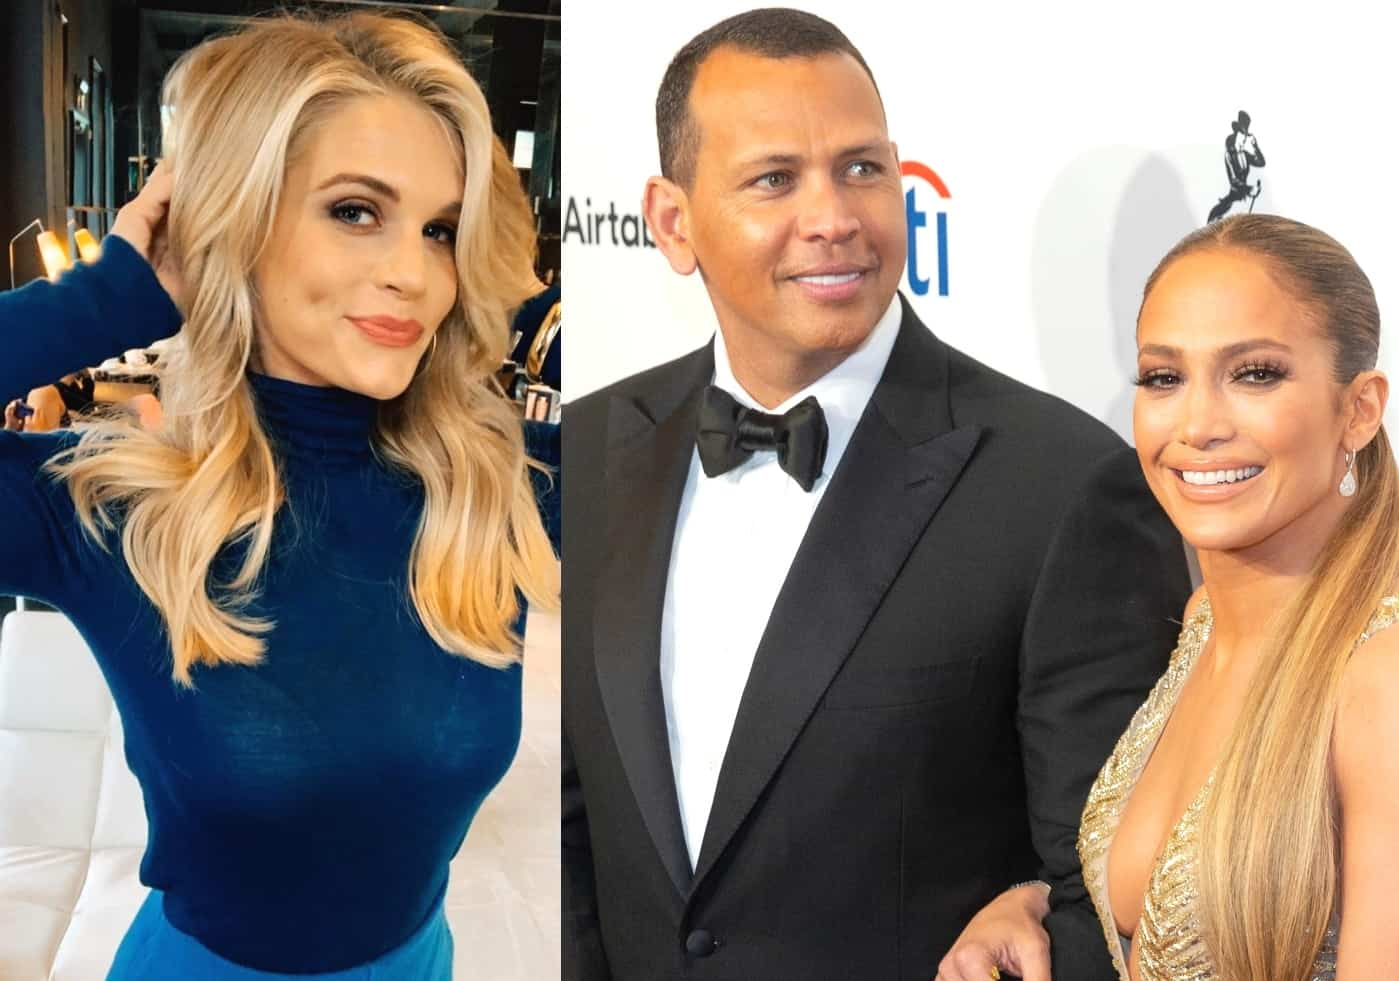 """Madison LeCroy Discusess A-Rod and J-Lo Split and Jokingly Takes Credit for """"Bennifer,"""" Reveals How She Met Boyfriend, and Teases A-Rod Drama on Southern Charm Season 8"""